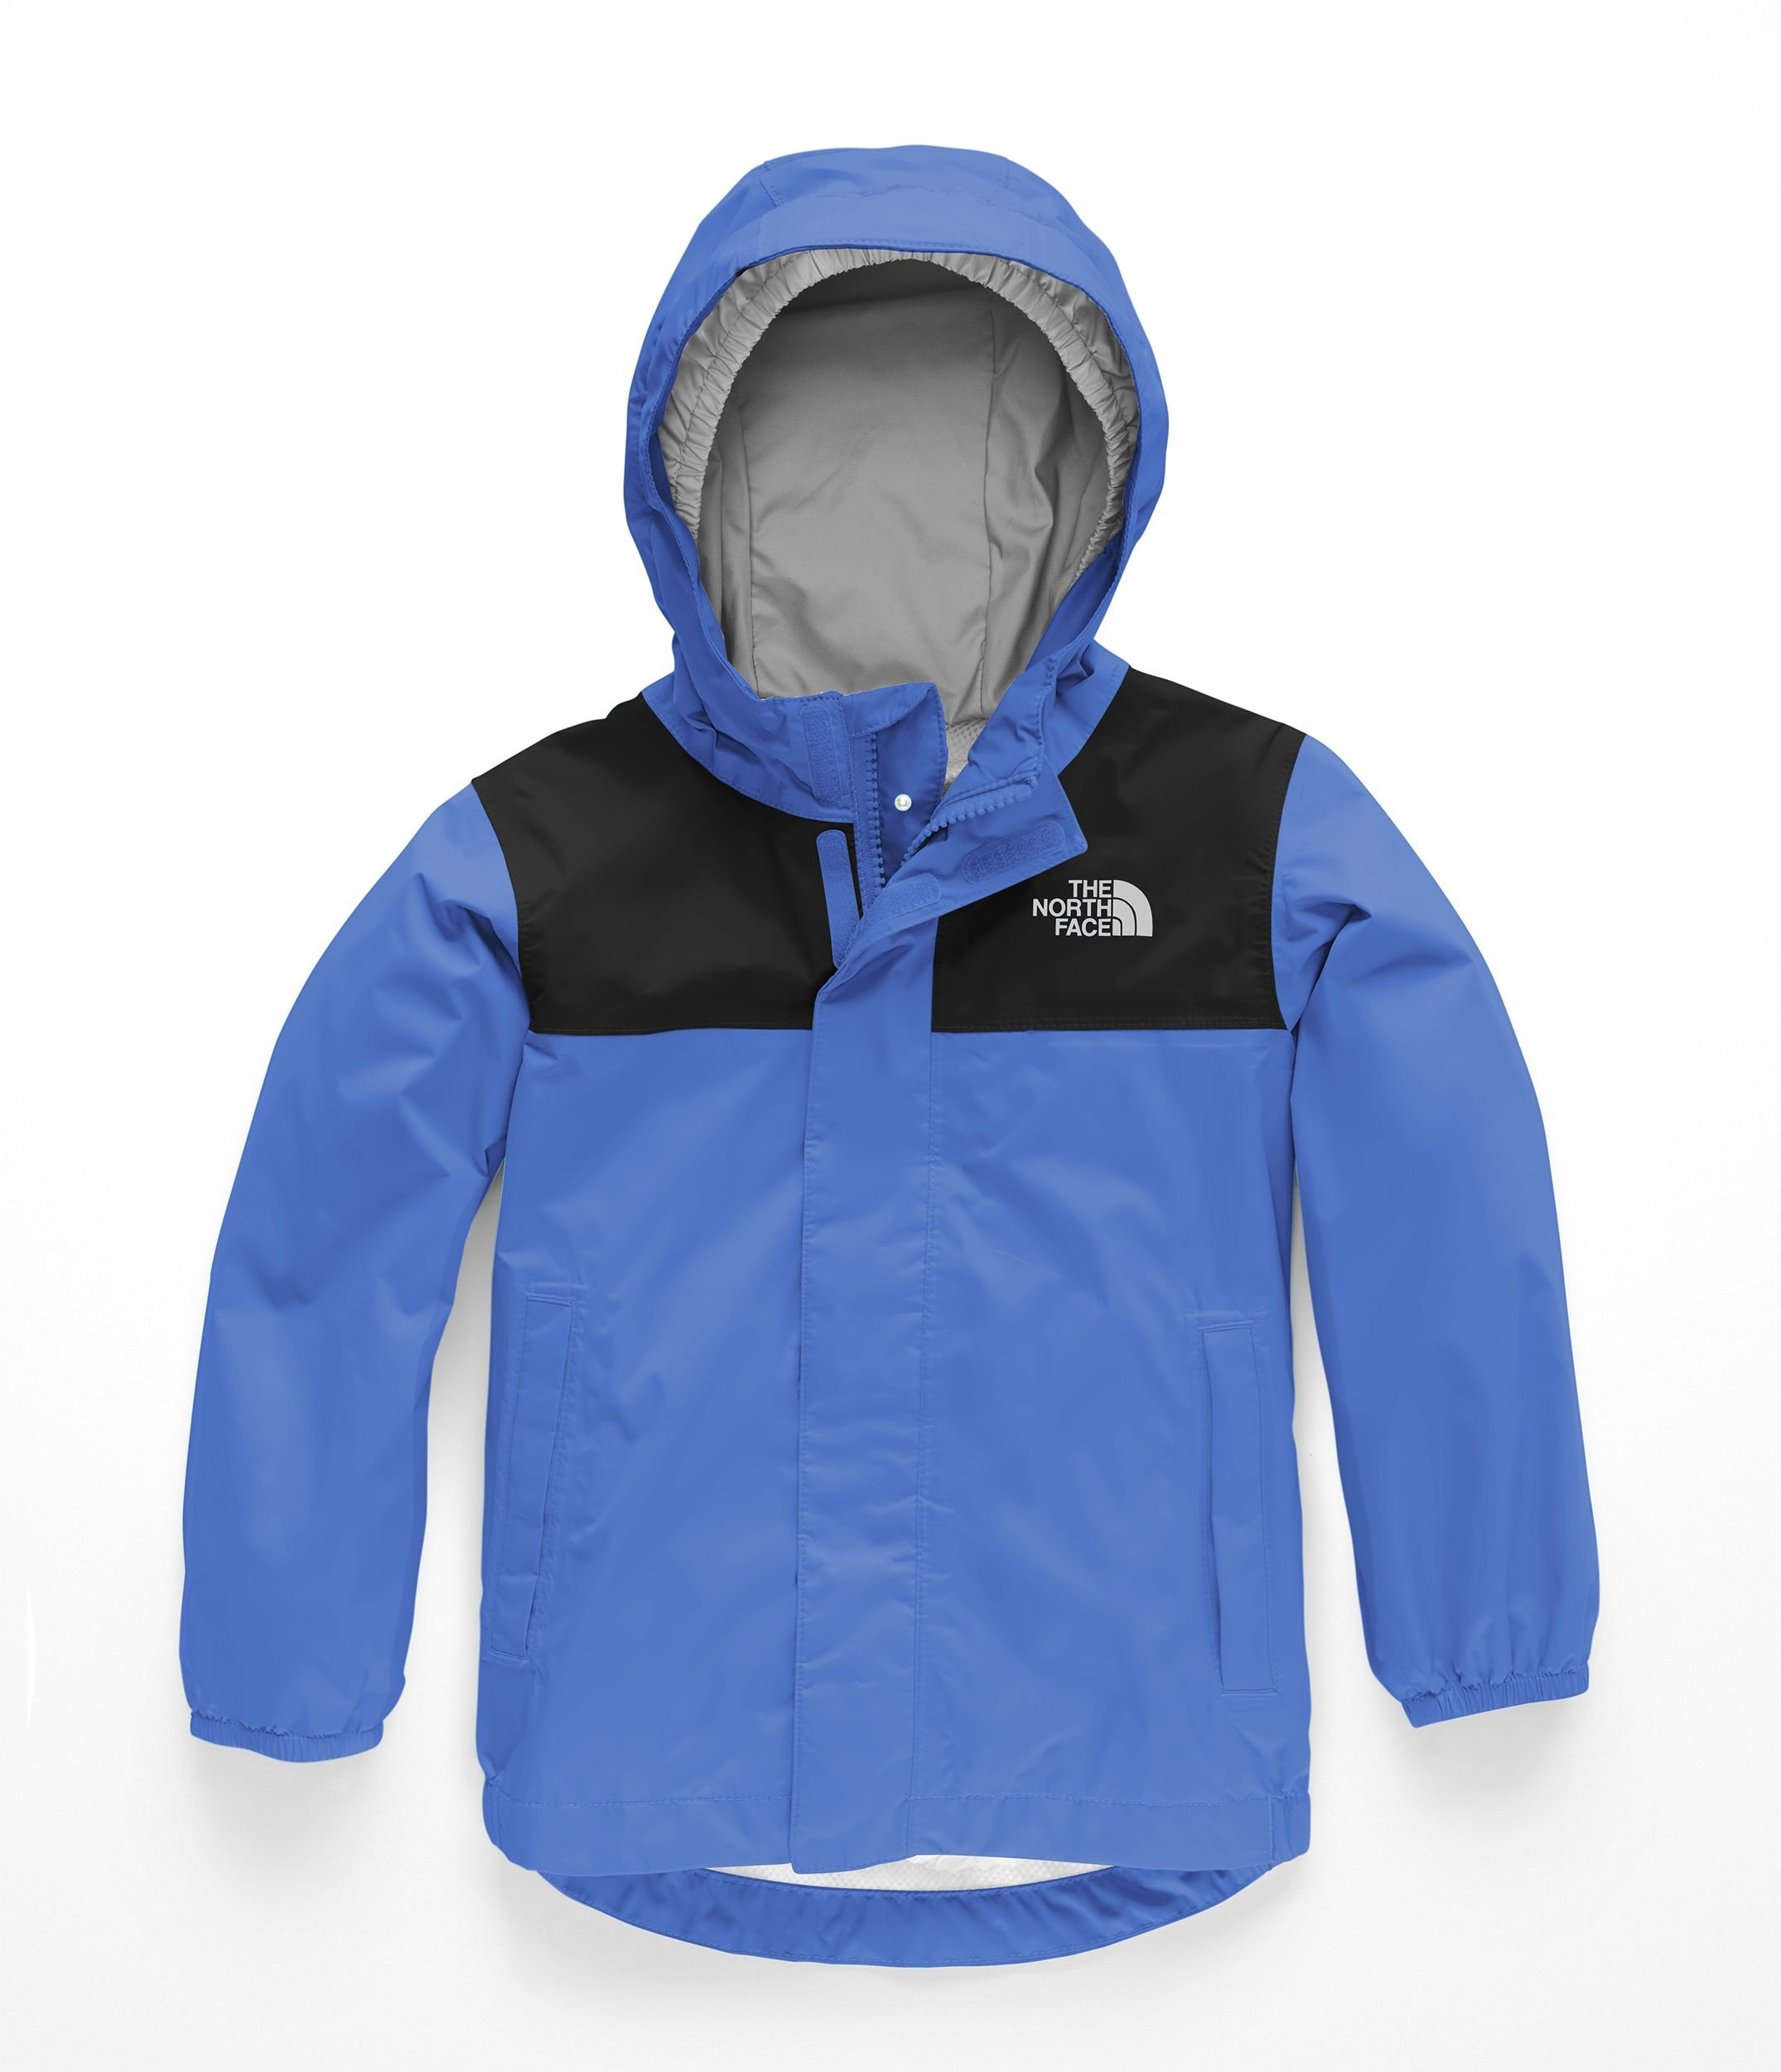 The North Face Todd Tailout Rain Jacket - Turkish Sea - 5T